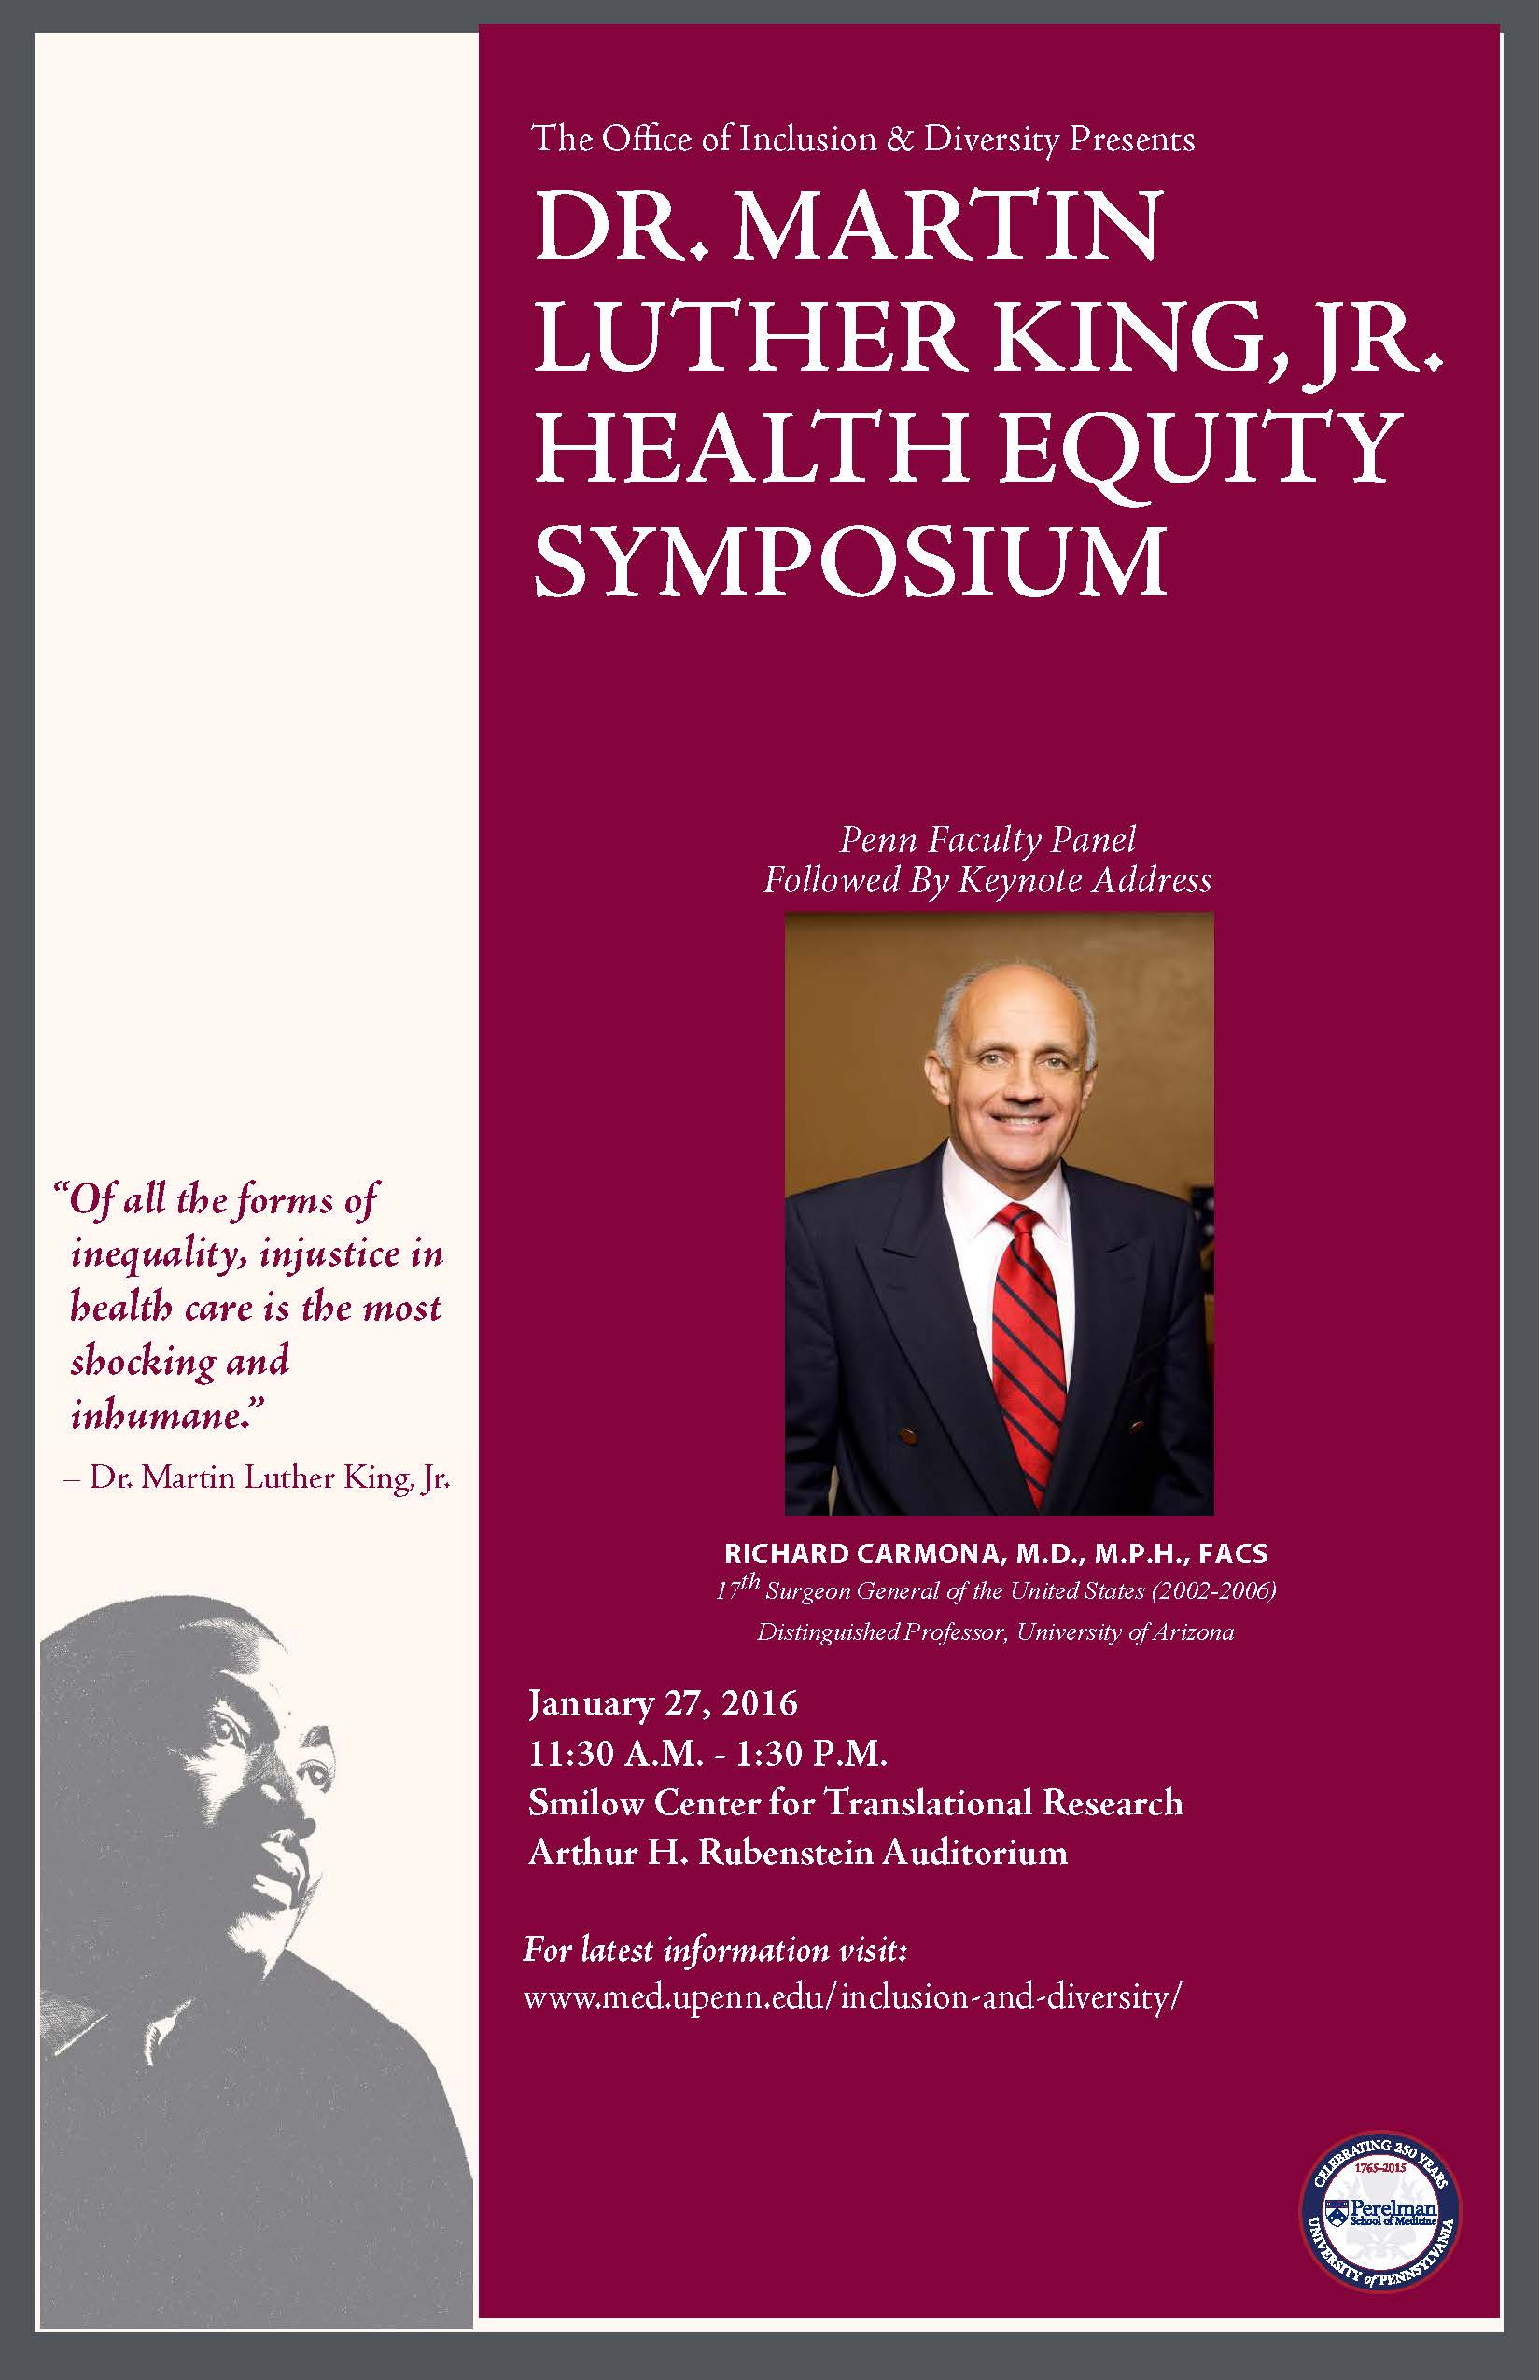 MLK Health Equity Symposium